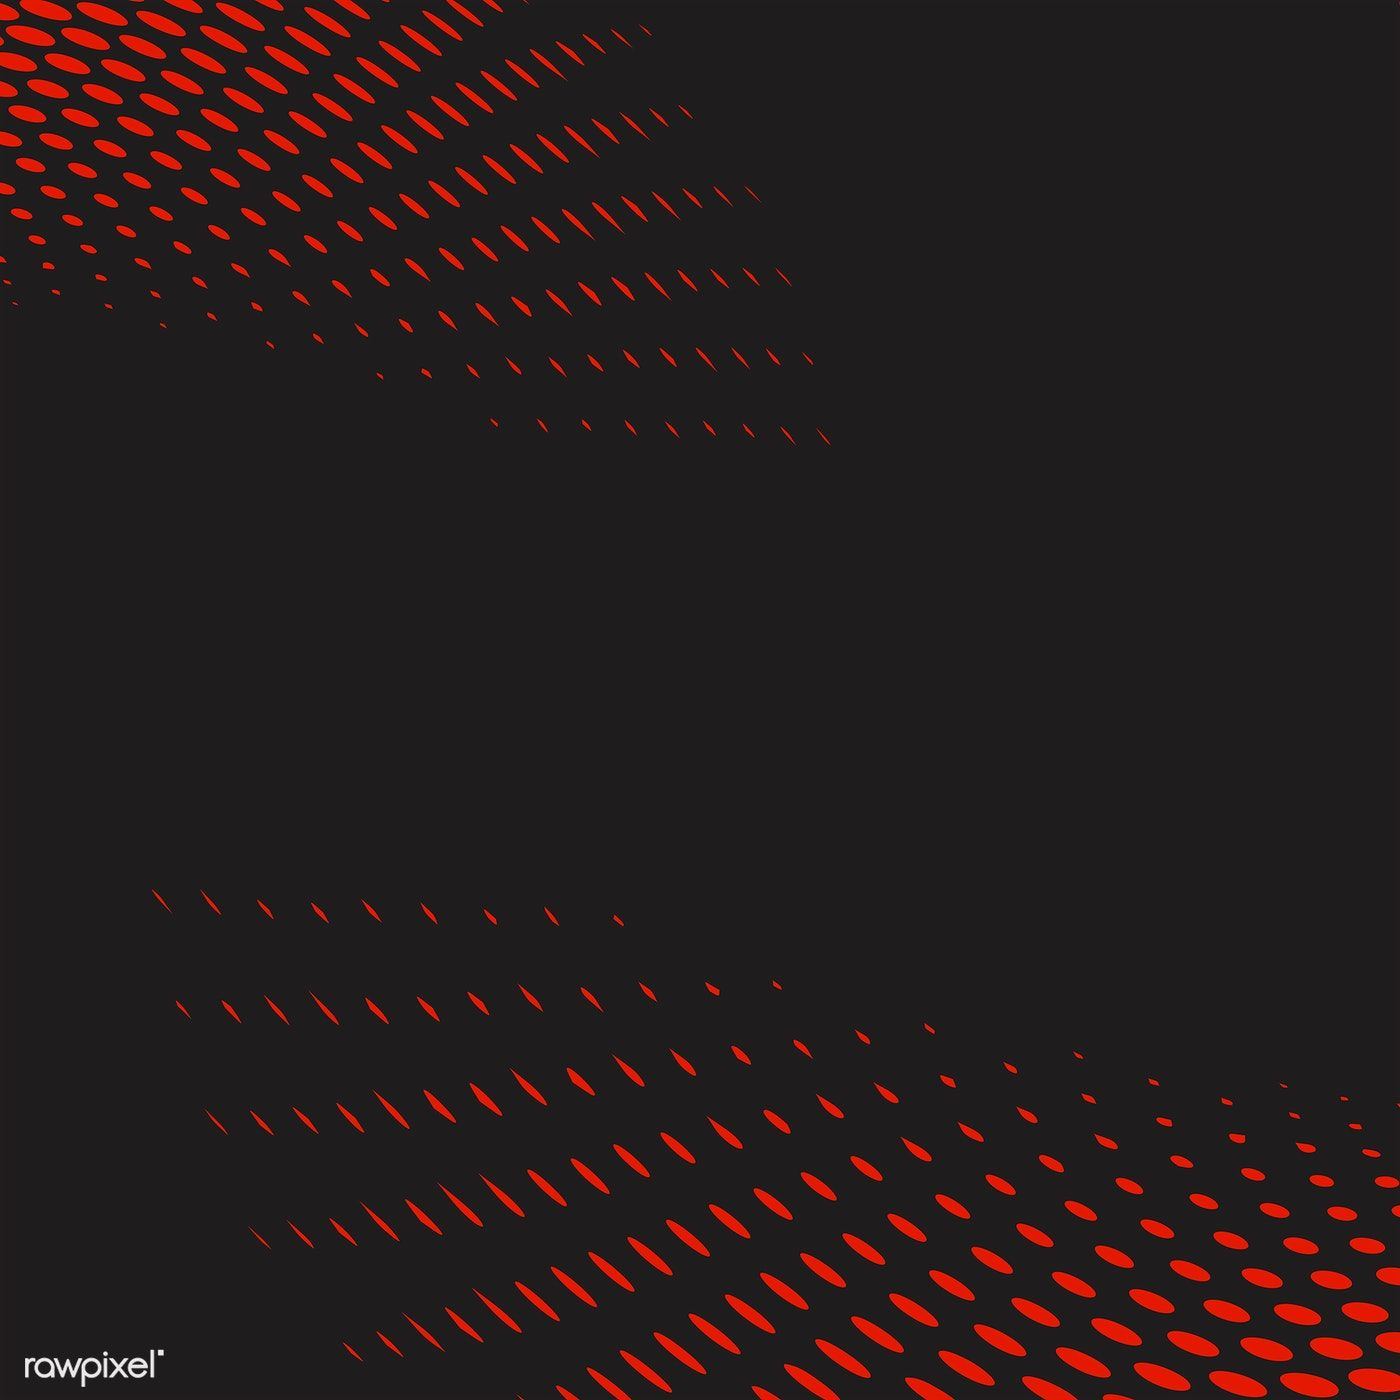 Red And Black Wavy Halftone Background Vector Free Image By Rawpixel Com Niwat Vector Free Halftone Wavy